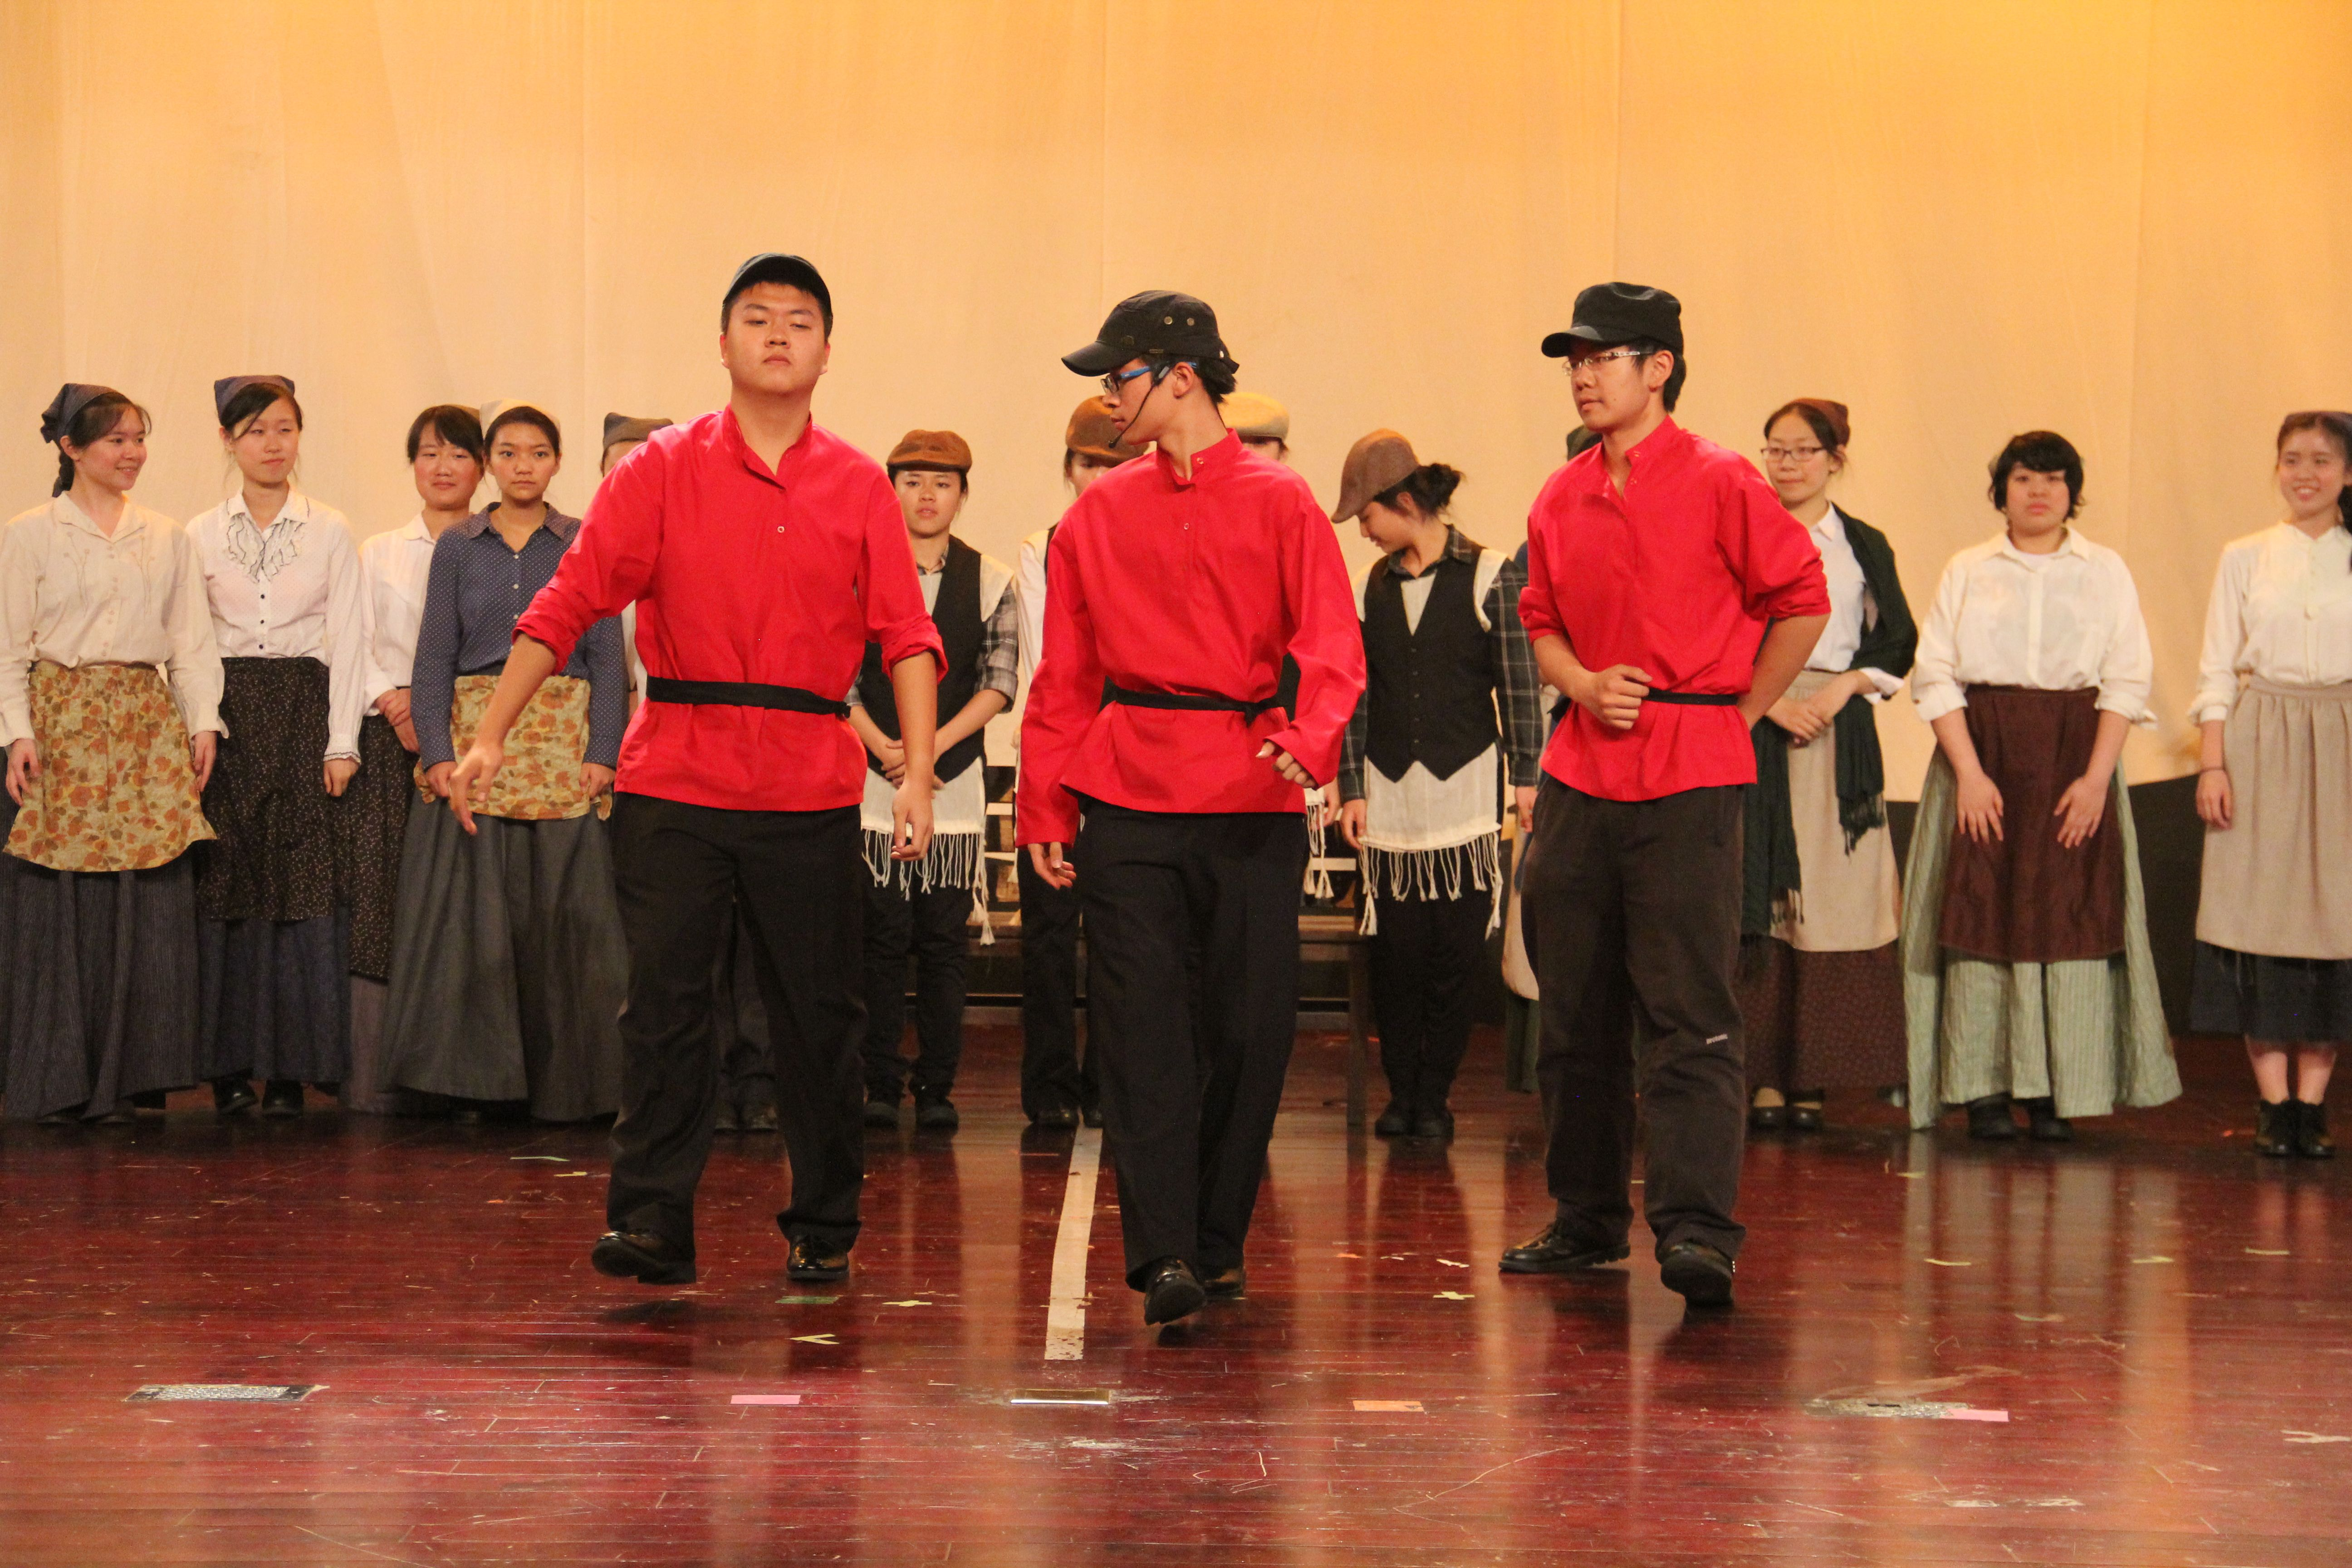 Russians Costumes Beijing National Day School Production Of Fiddler On The Roof 2014 Fiddler On The Roof Costume Rentals Musical Theatre Costumes